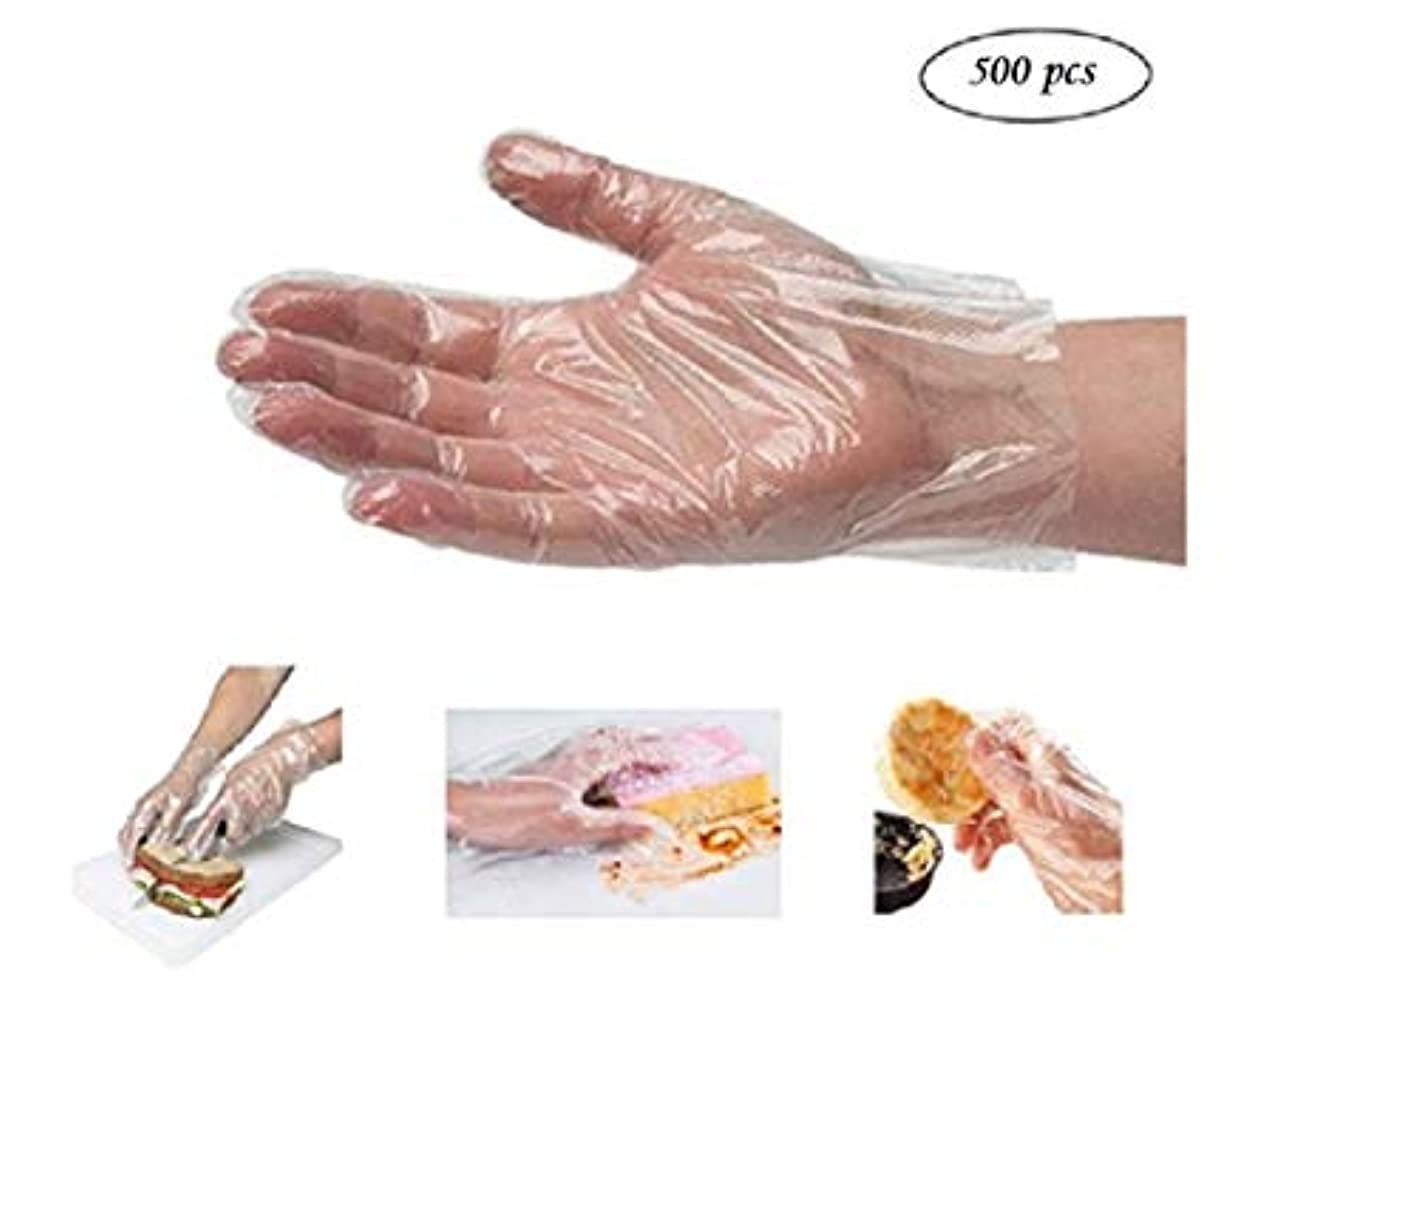 (5) - BYP Clear Disposable Plastic High Density Polyethylene Gloves Sterile Disposable Safety Gloves(500 Sheets...